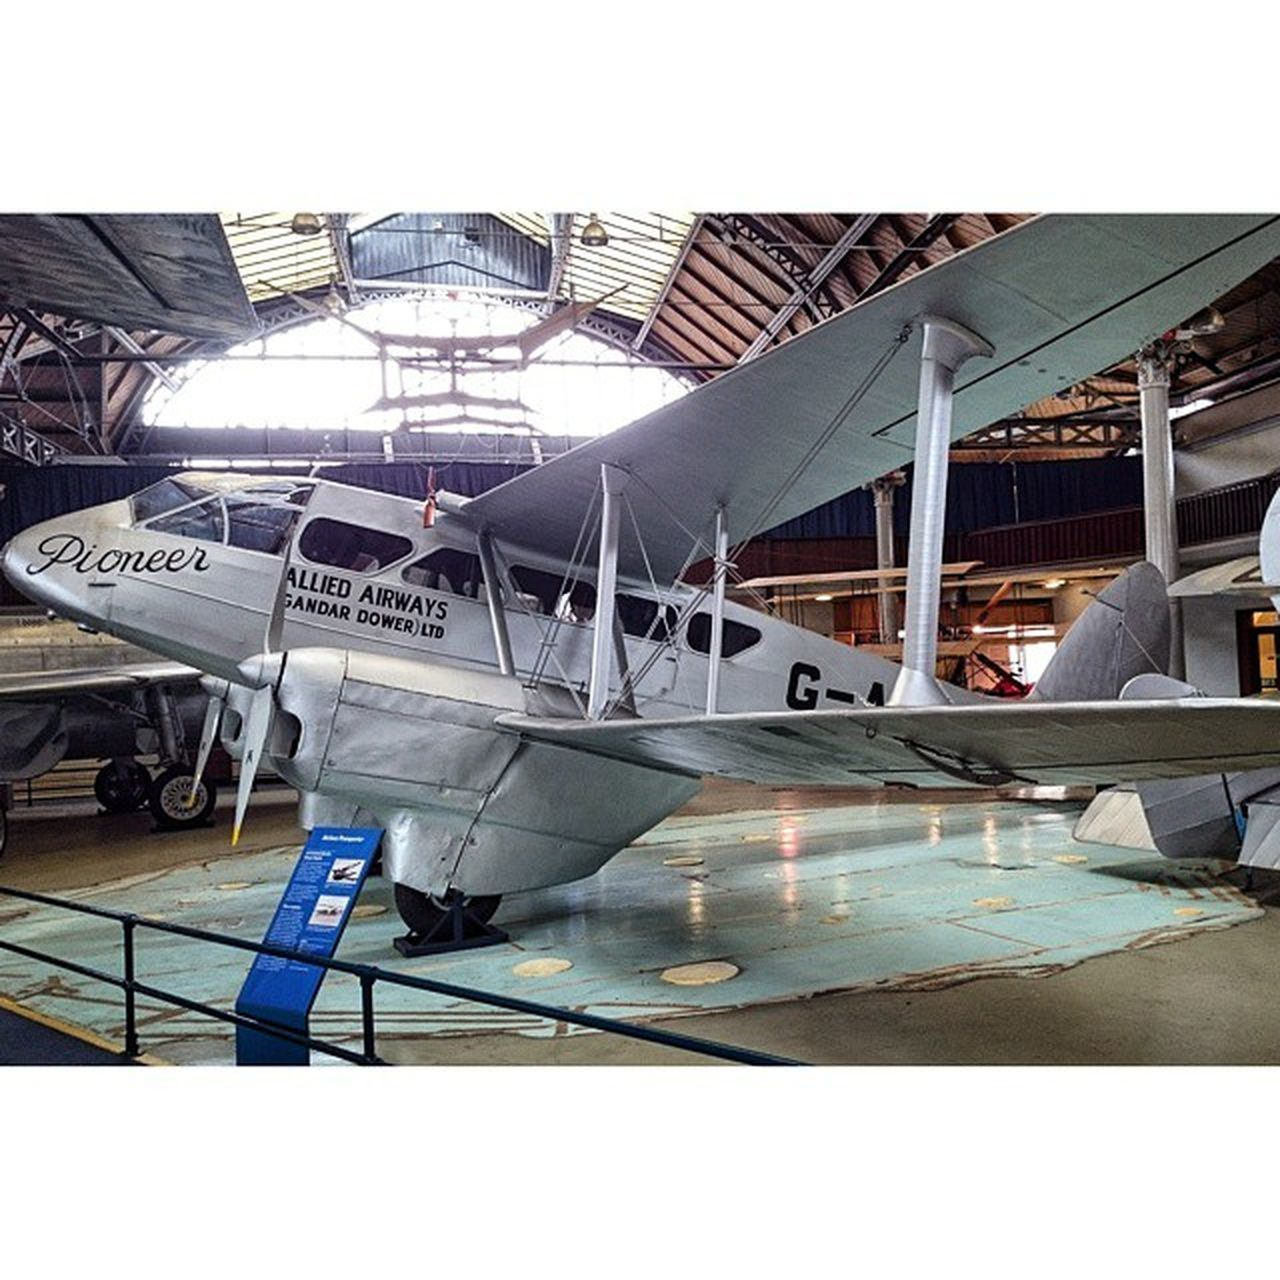 To the pioneers 👌 Dehavilland Dh86 Pioneers Manchester royal musuem